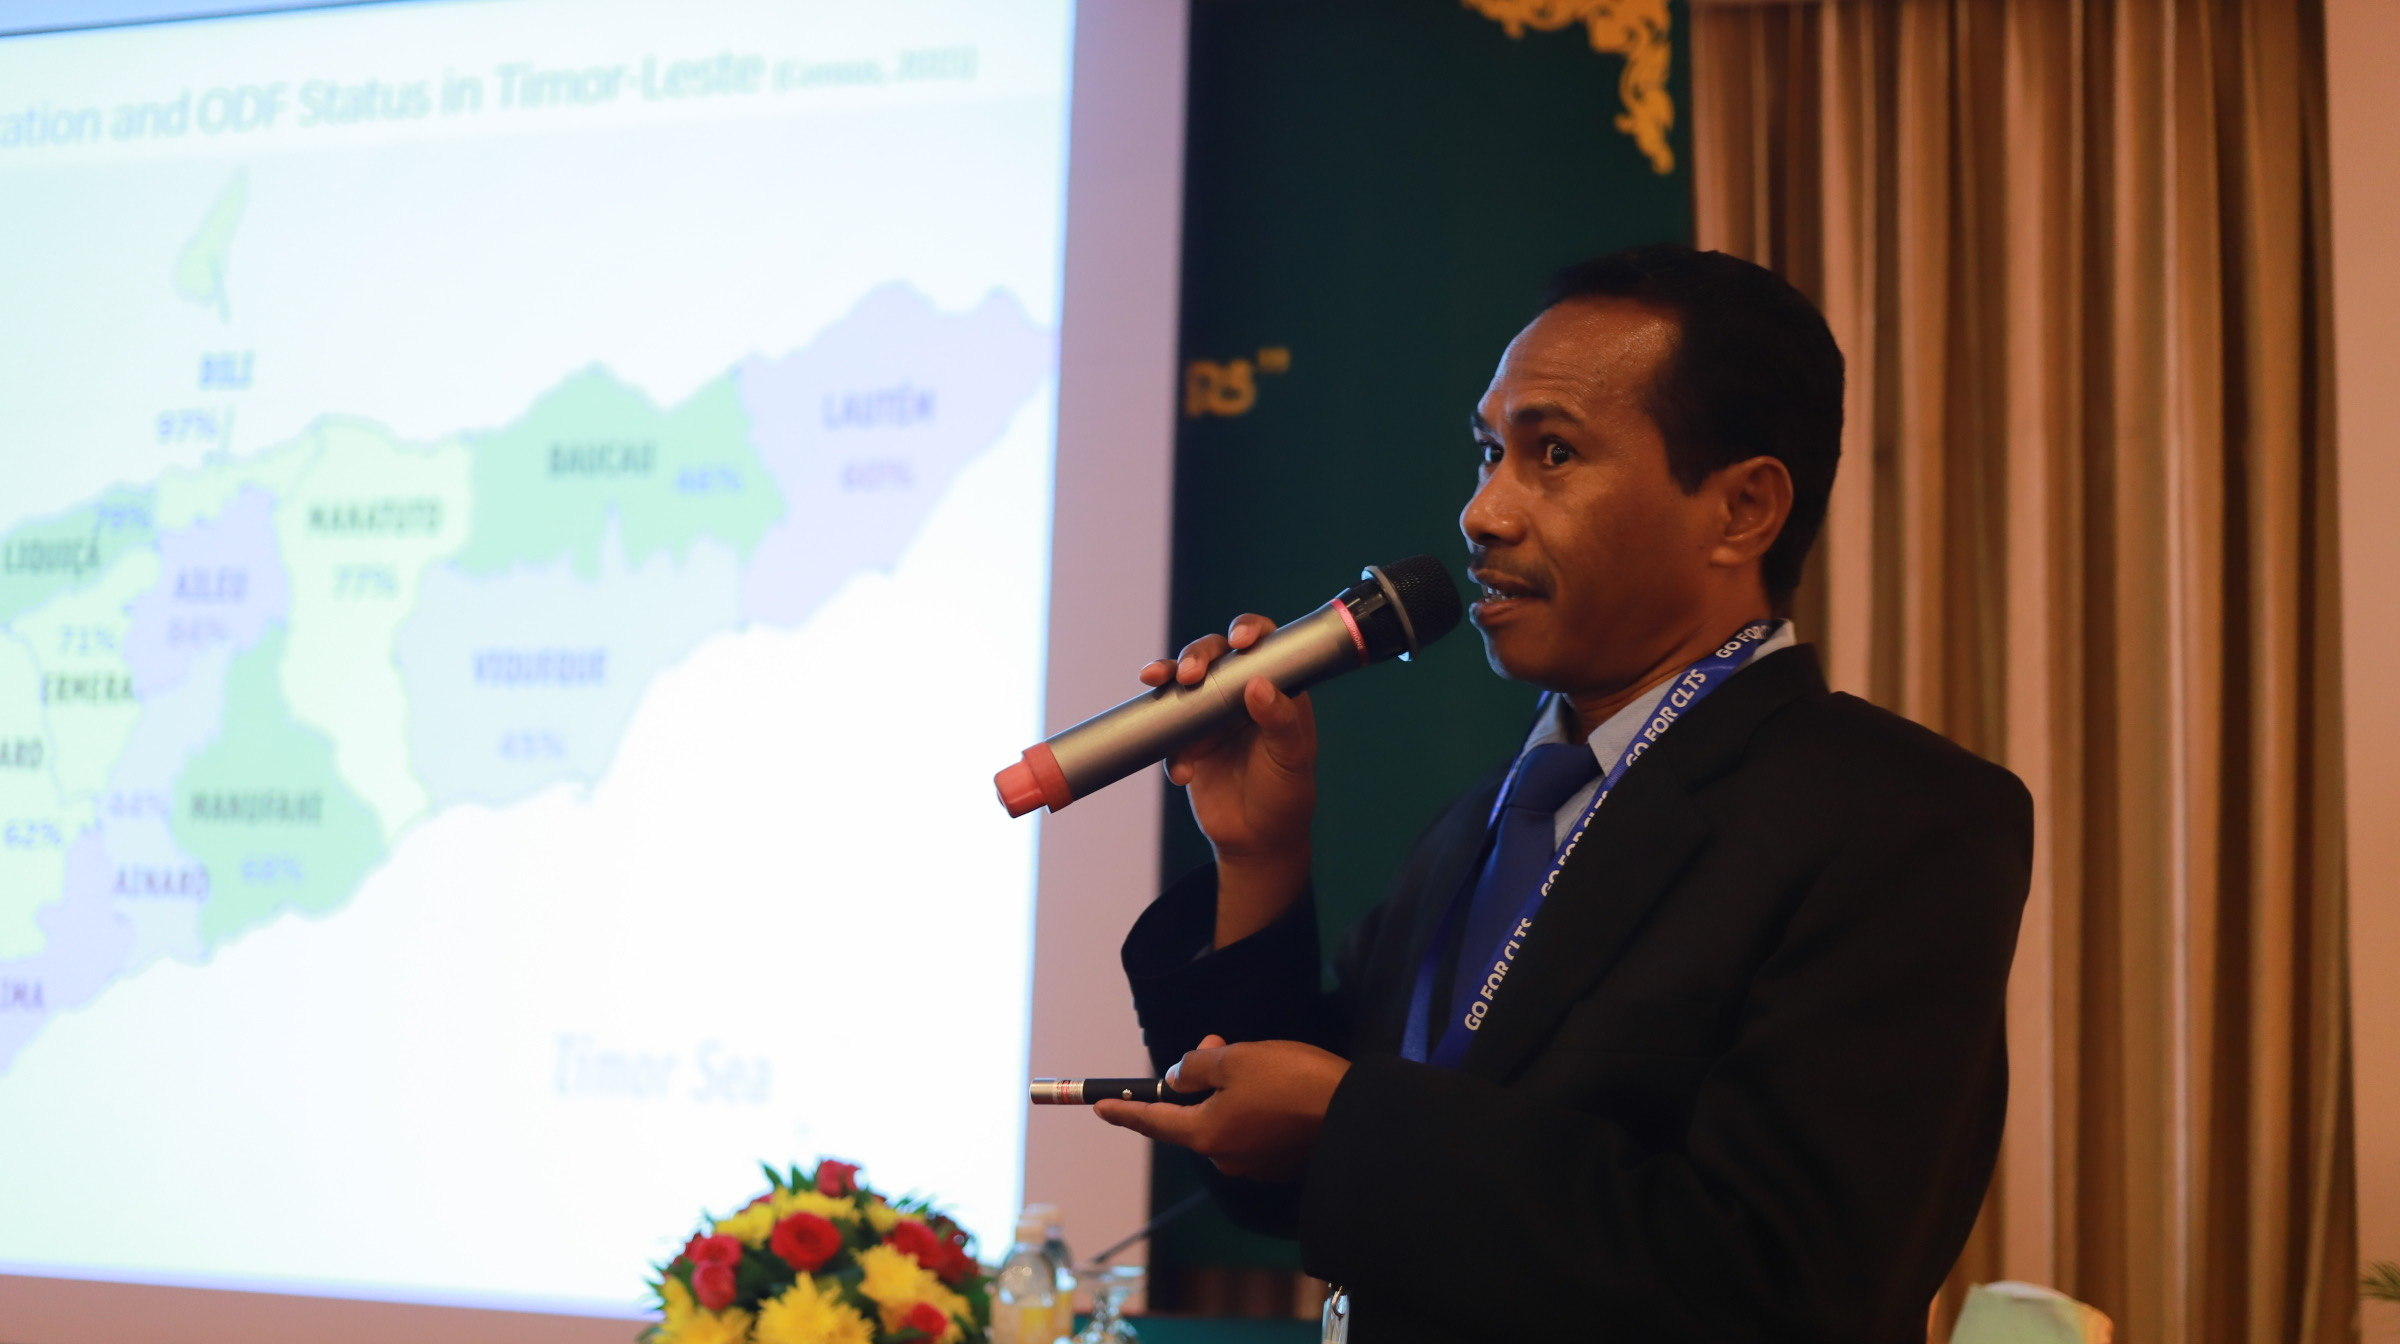 Regional Conference on CLTS in Cambodia